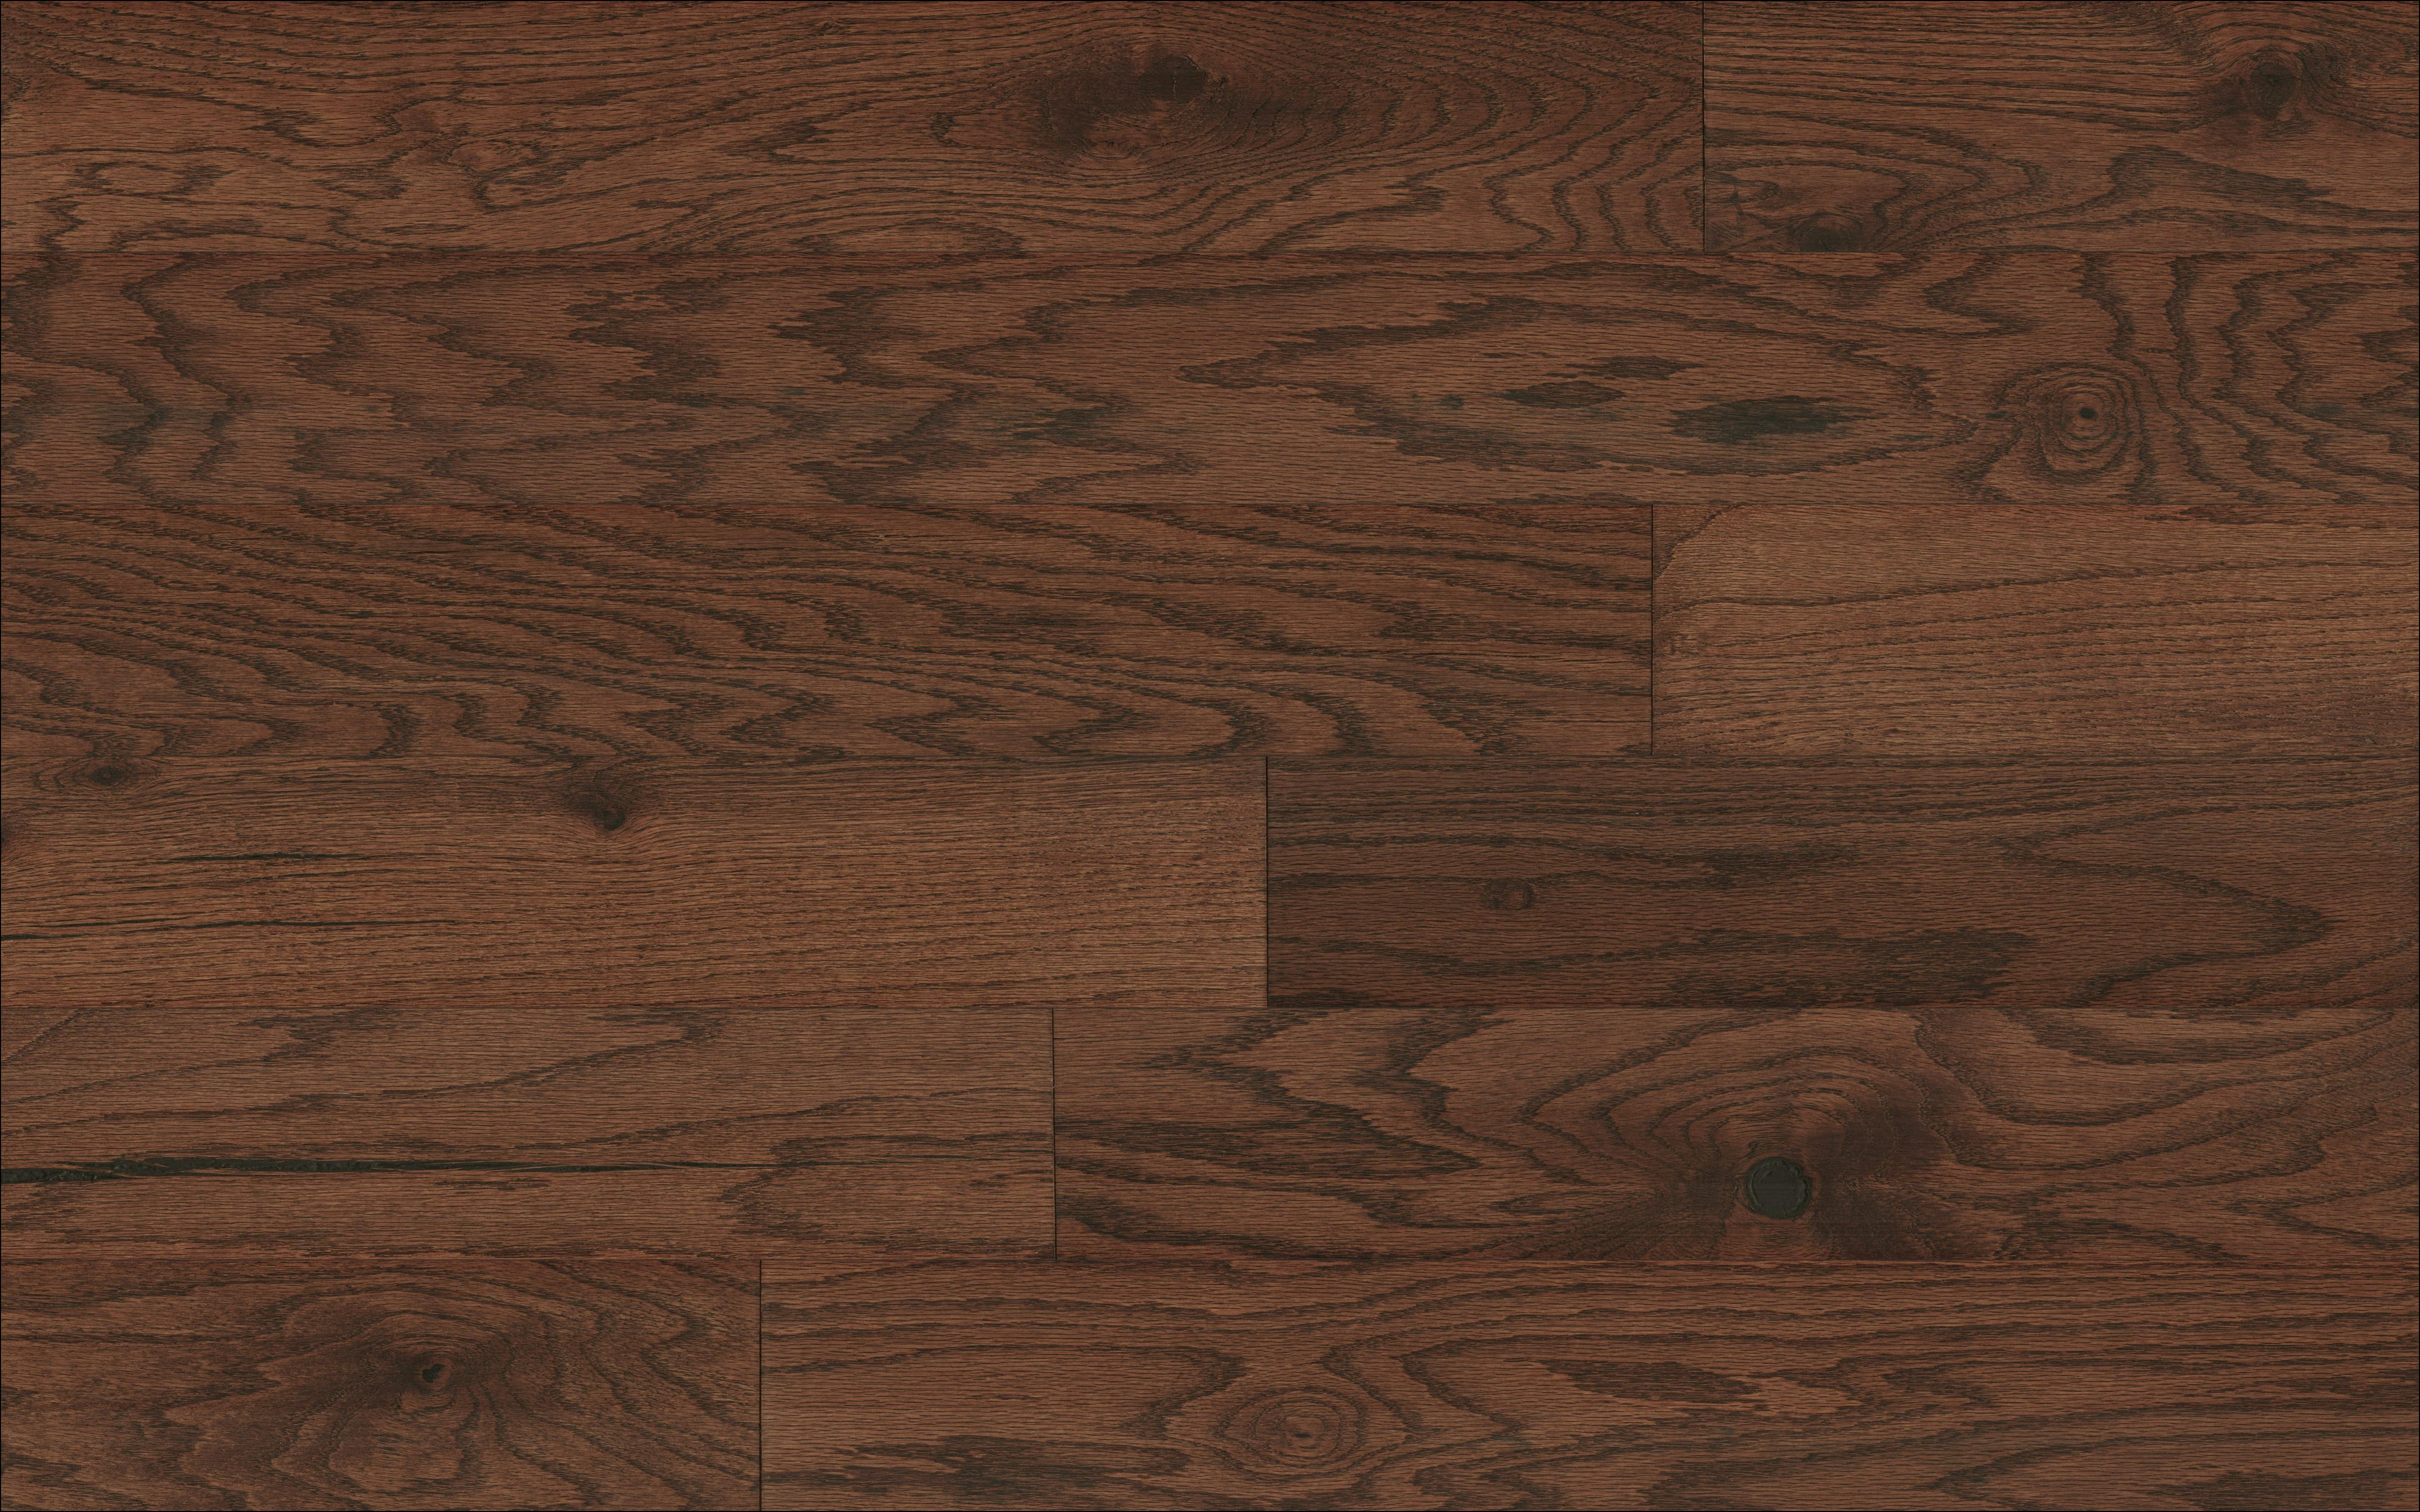 pictures of oak hardwood floors of best place flooring ideas for best place to buy engineered hardwood flooring collection mullican devonshire oak saddle 5 engineered hardwood